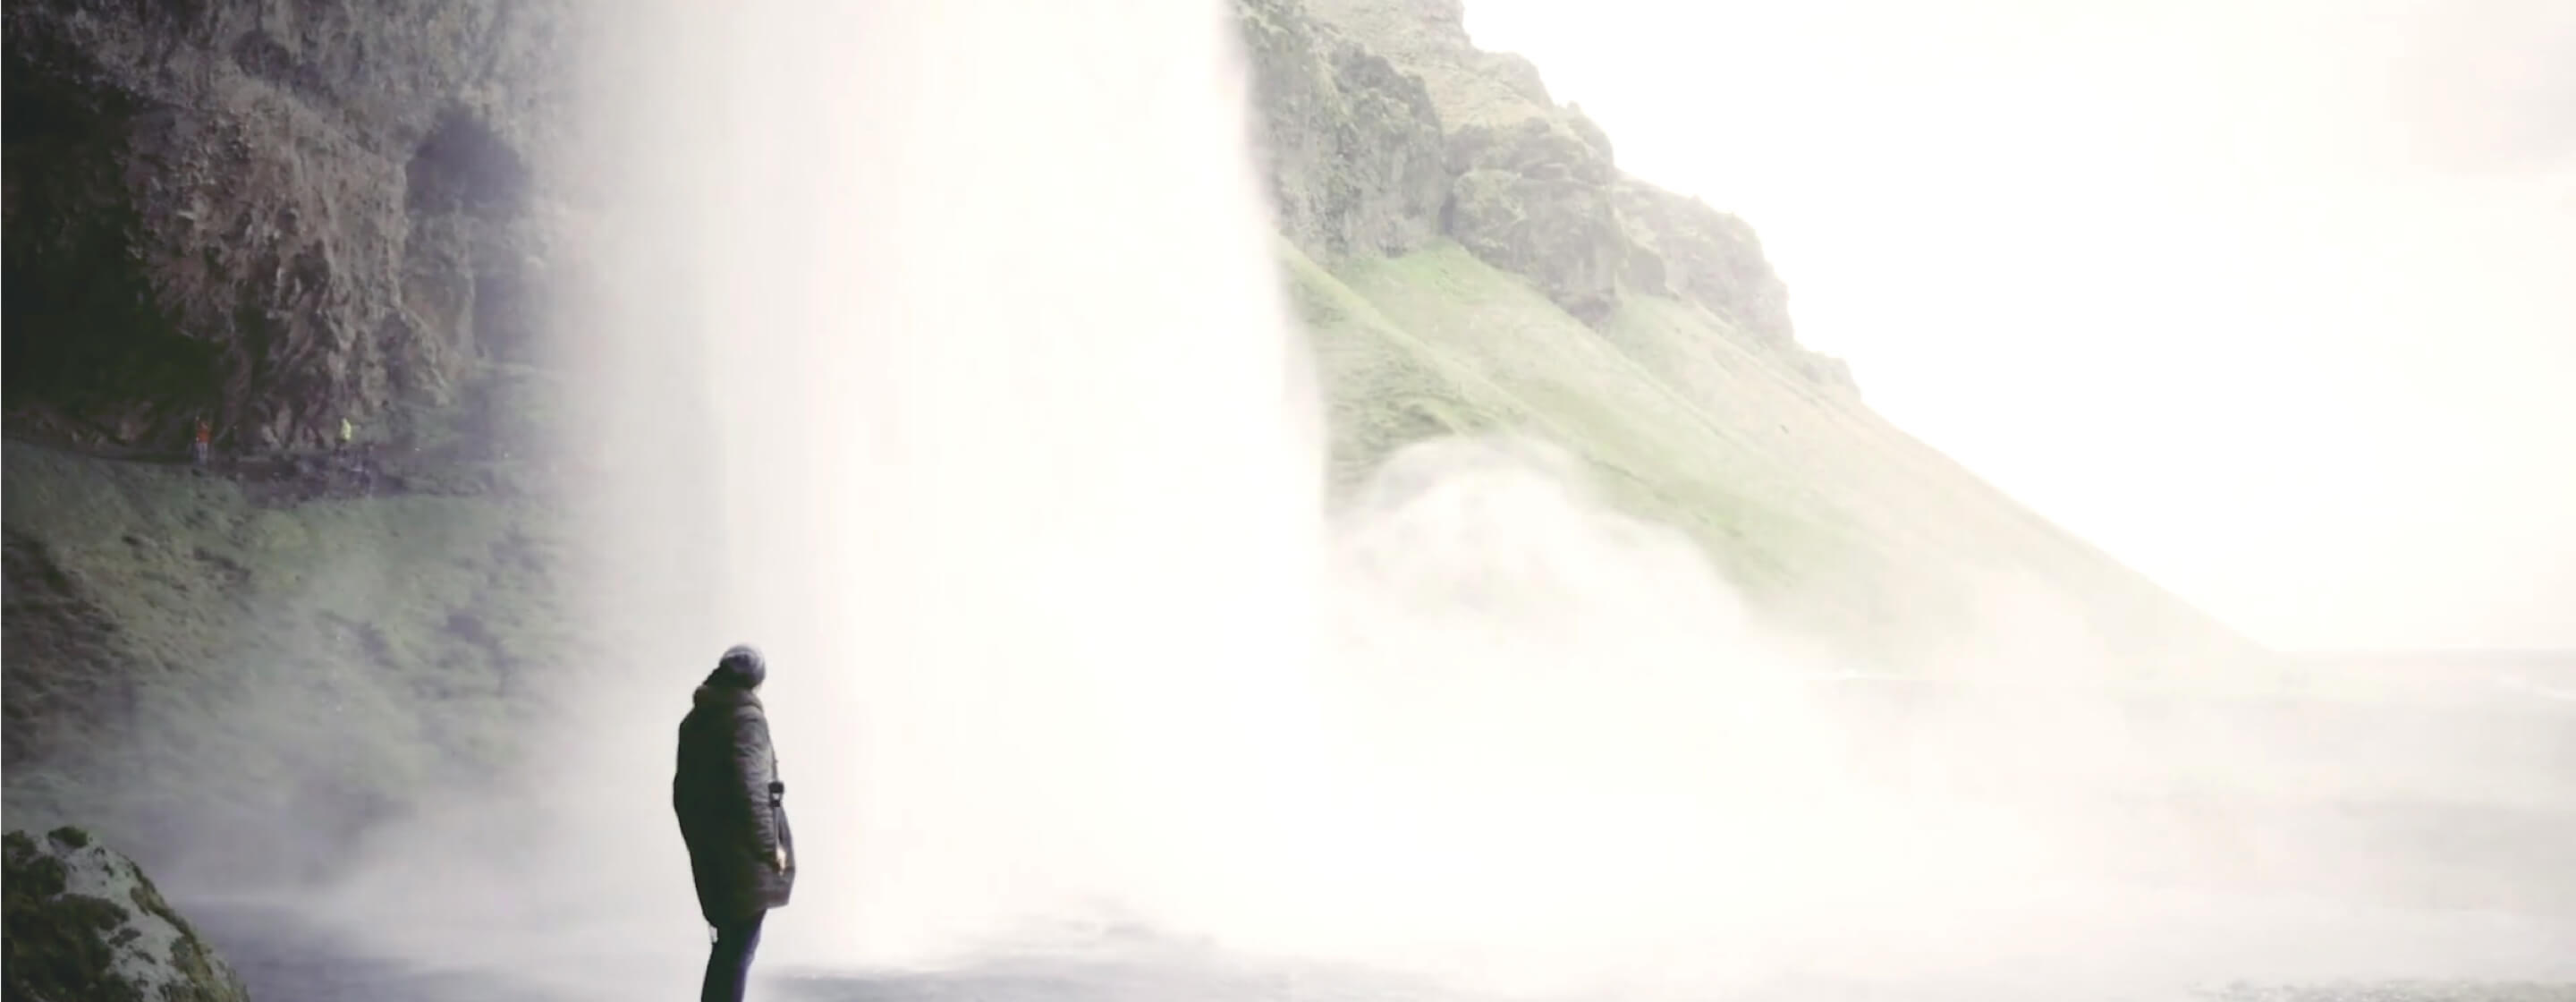 Person in a coat standing next to a massive cascading waterfall with rocks and green hills behind